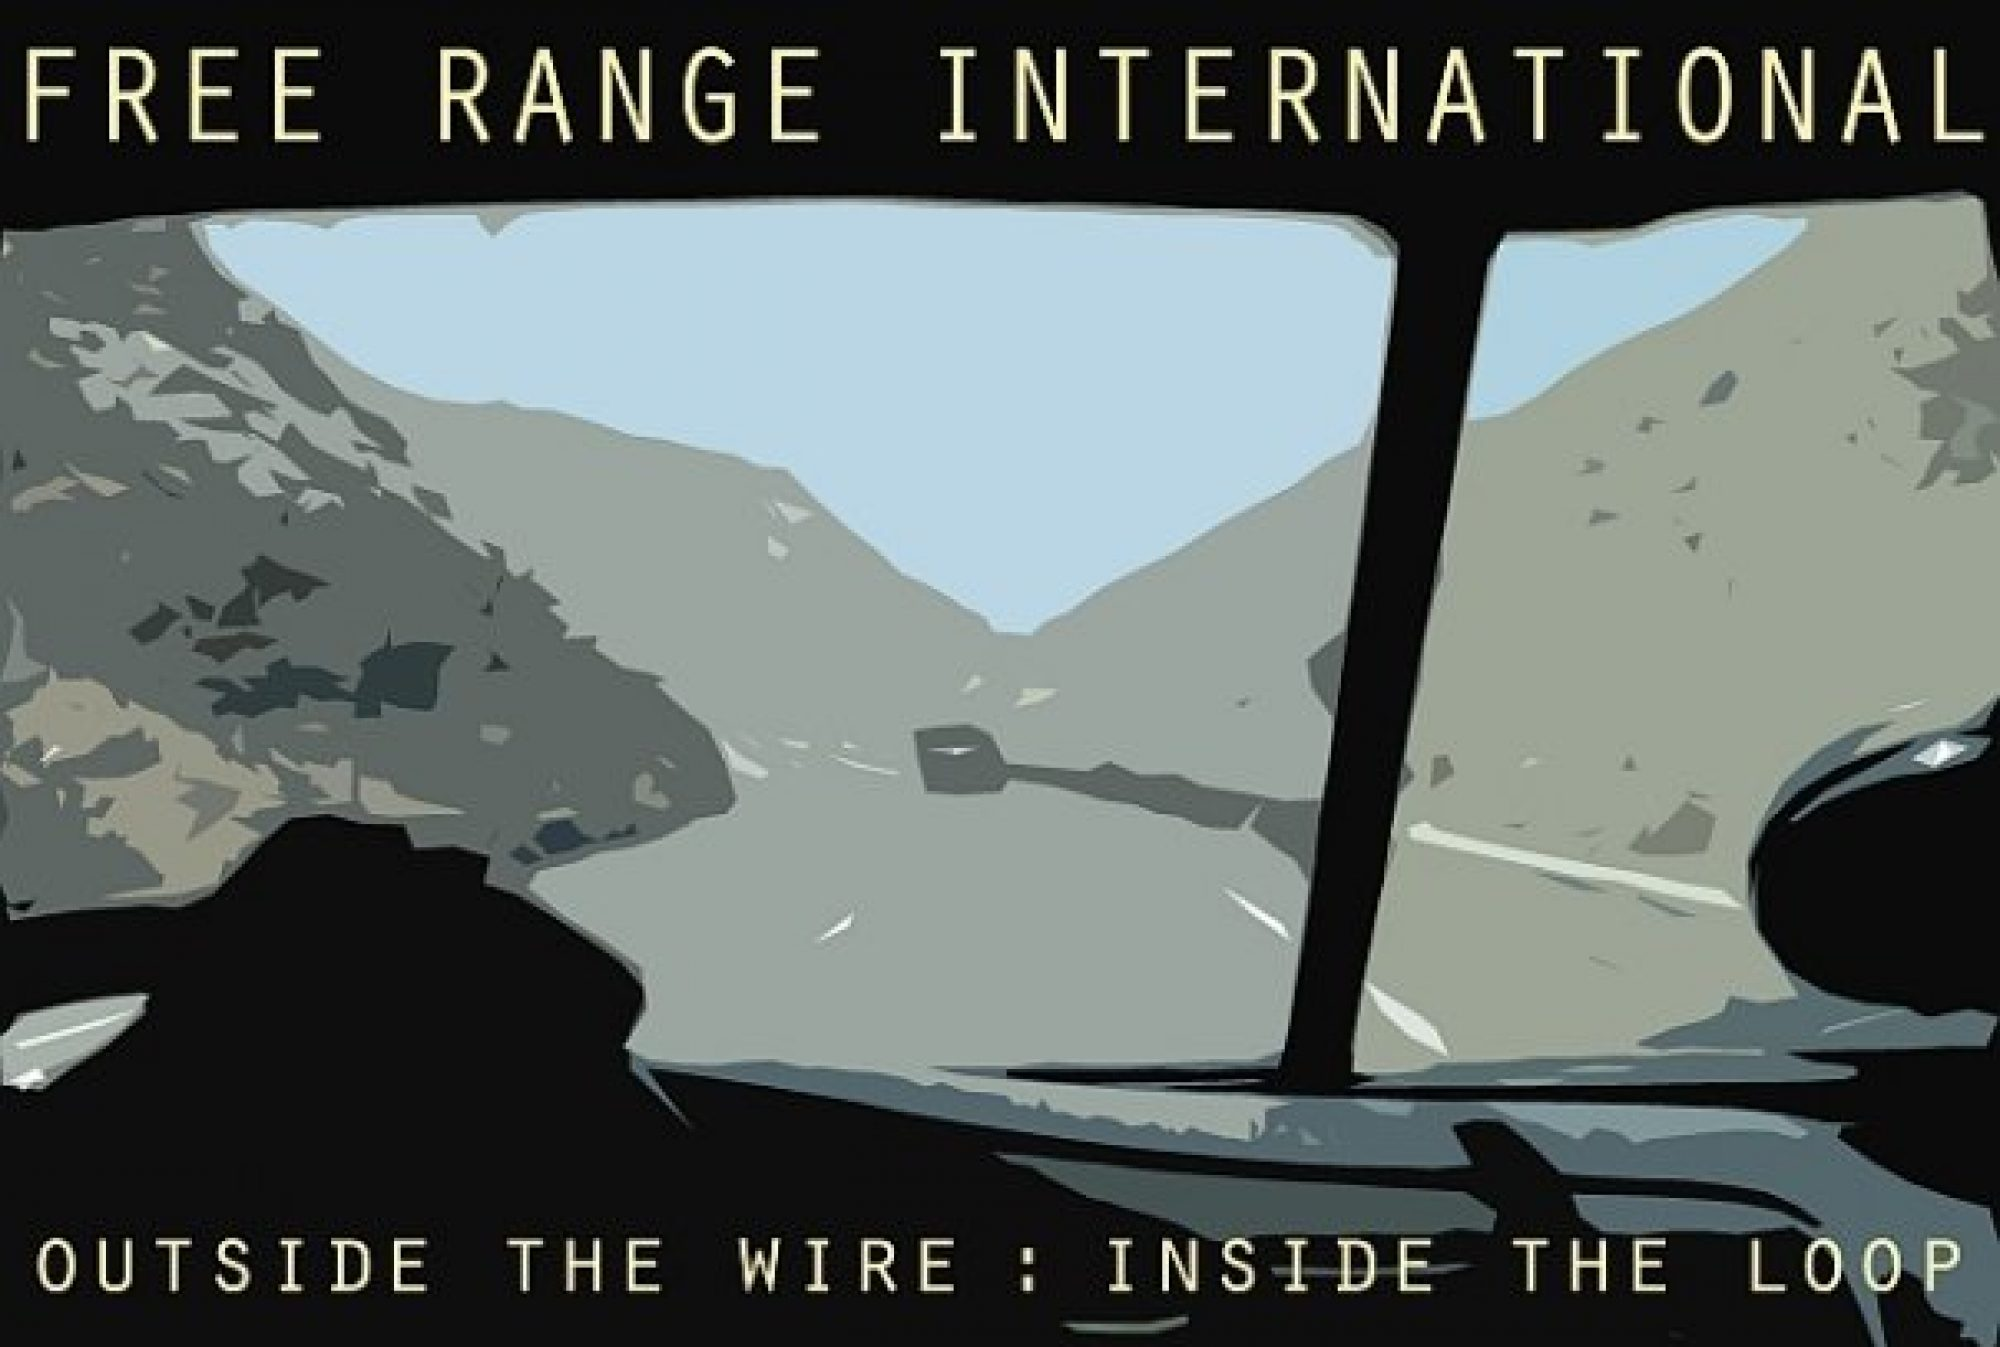 Free Range International